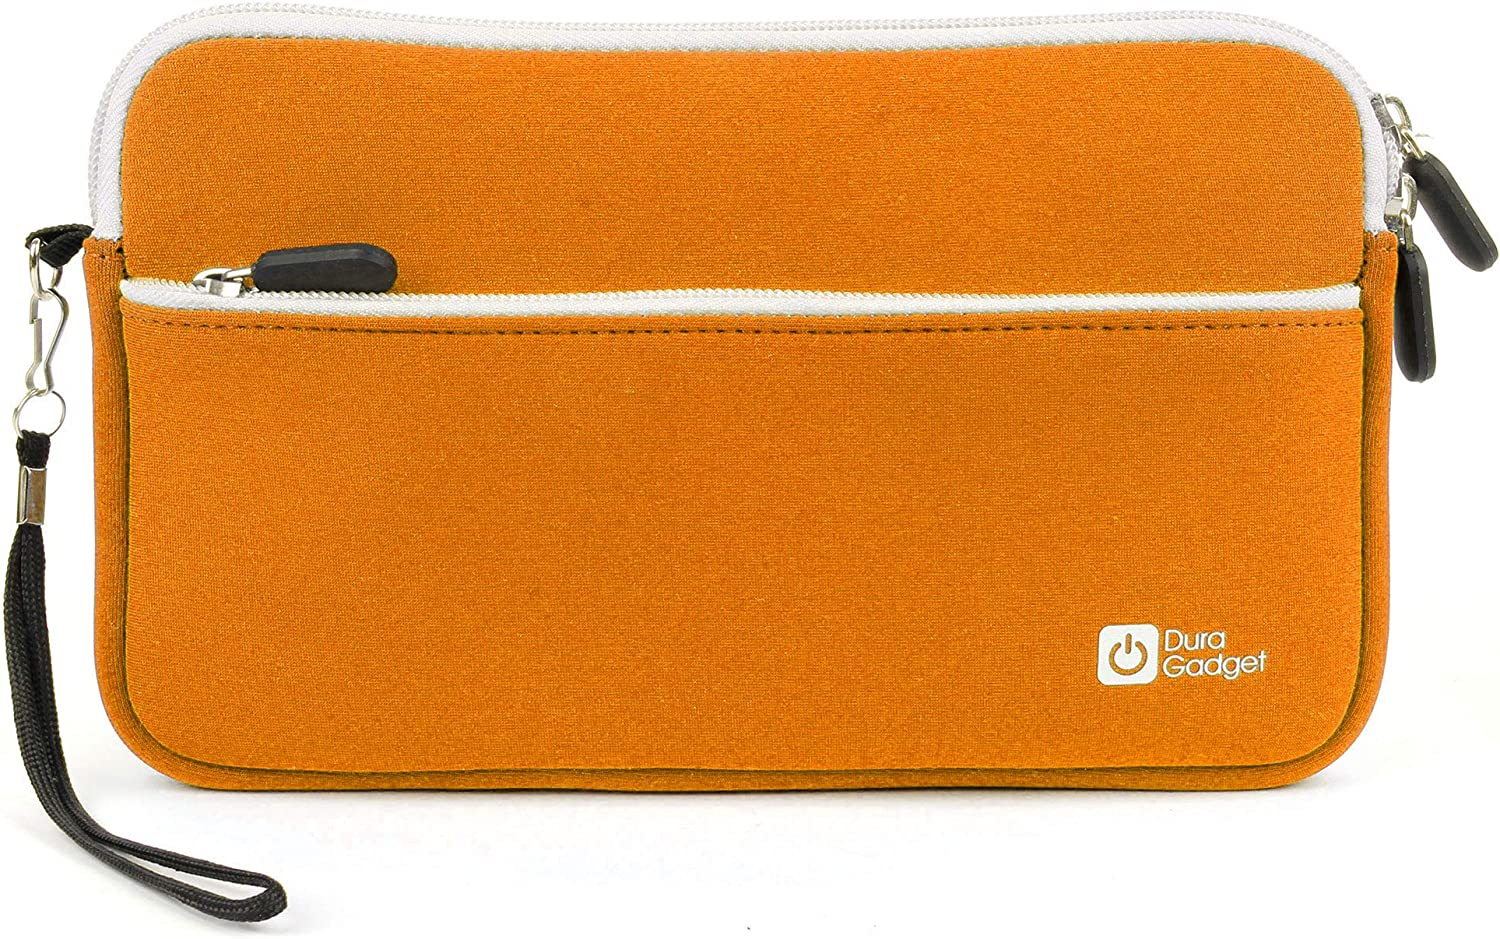 DURAGADGET Premium Quality Water Resistant Travel Pouch-Style Case in Orange Neoprene - Compatible with Dell Venue 8 16GB Android 4.2 Tablet (Black)